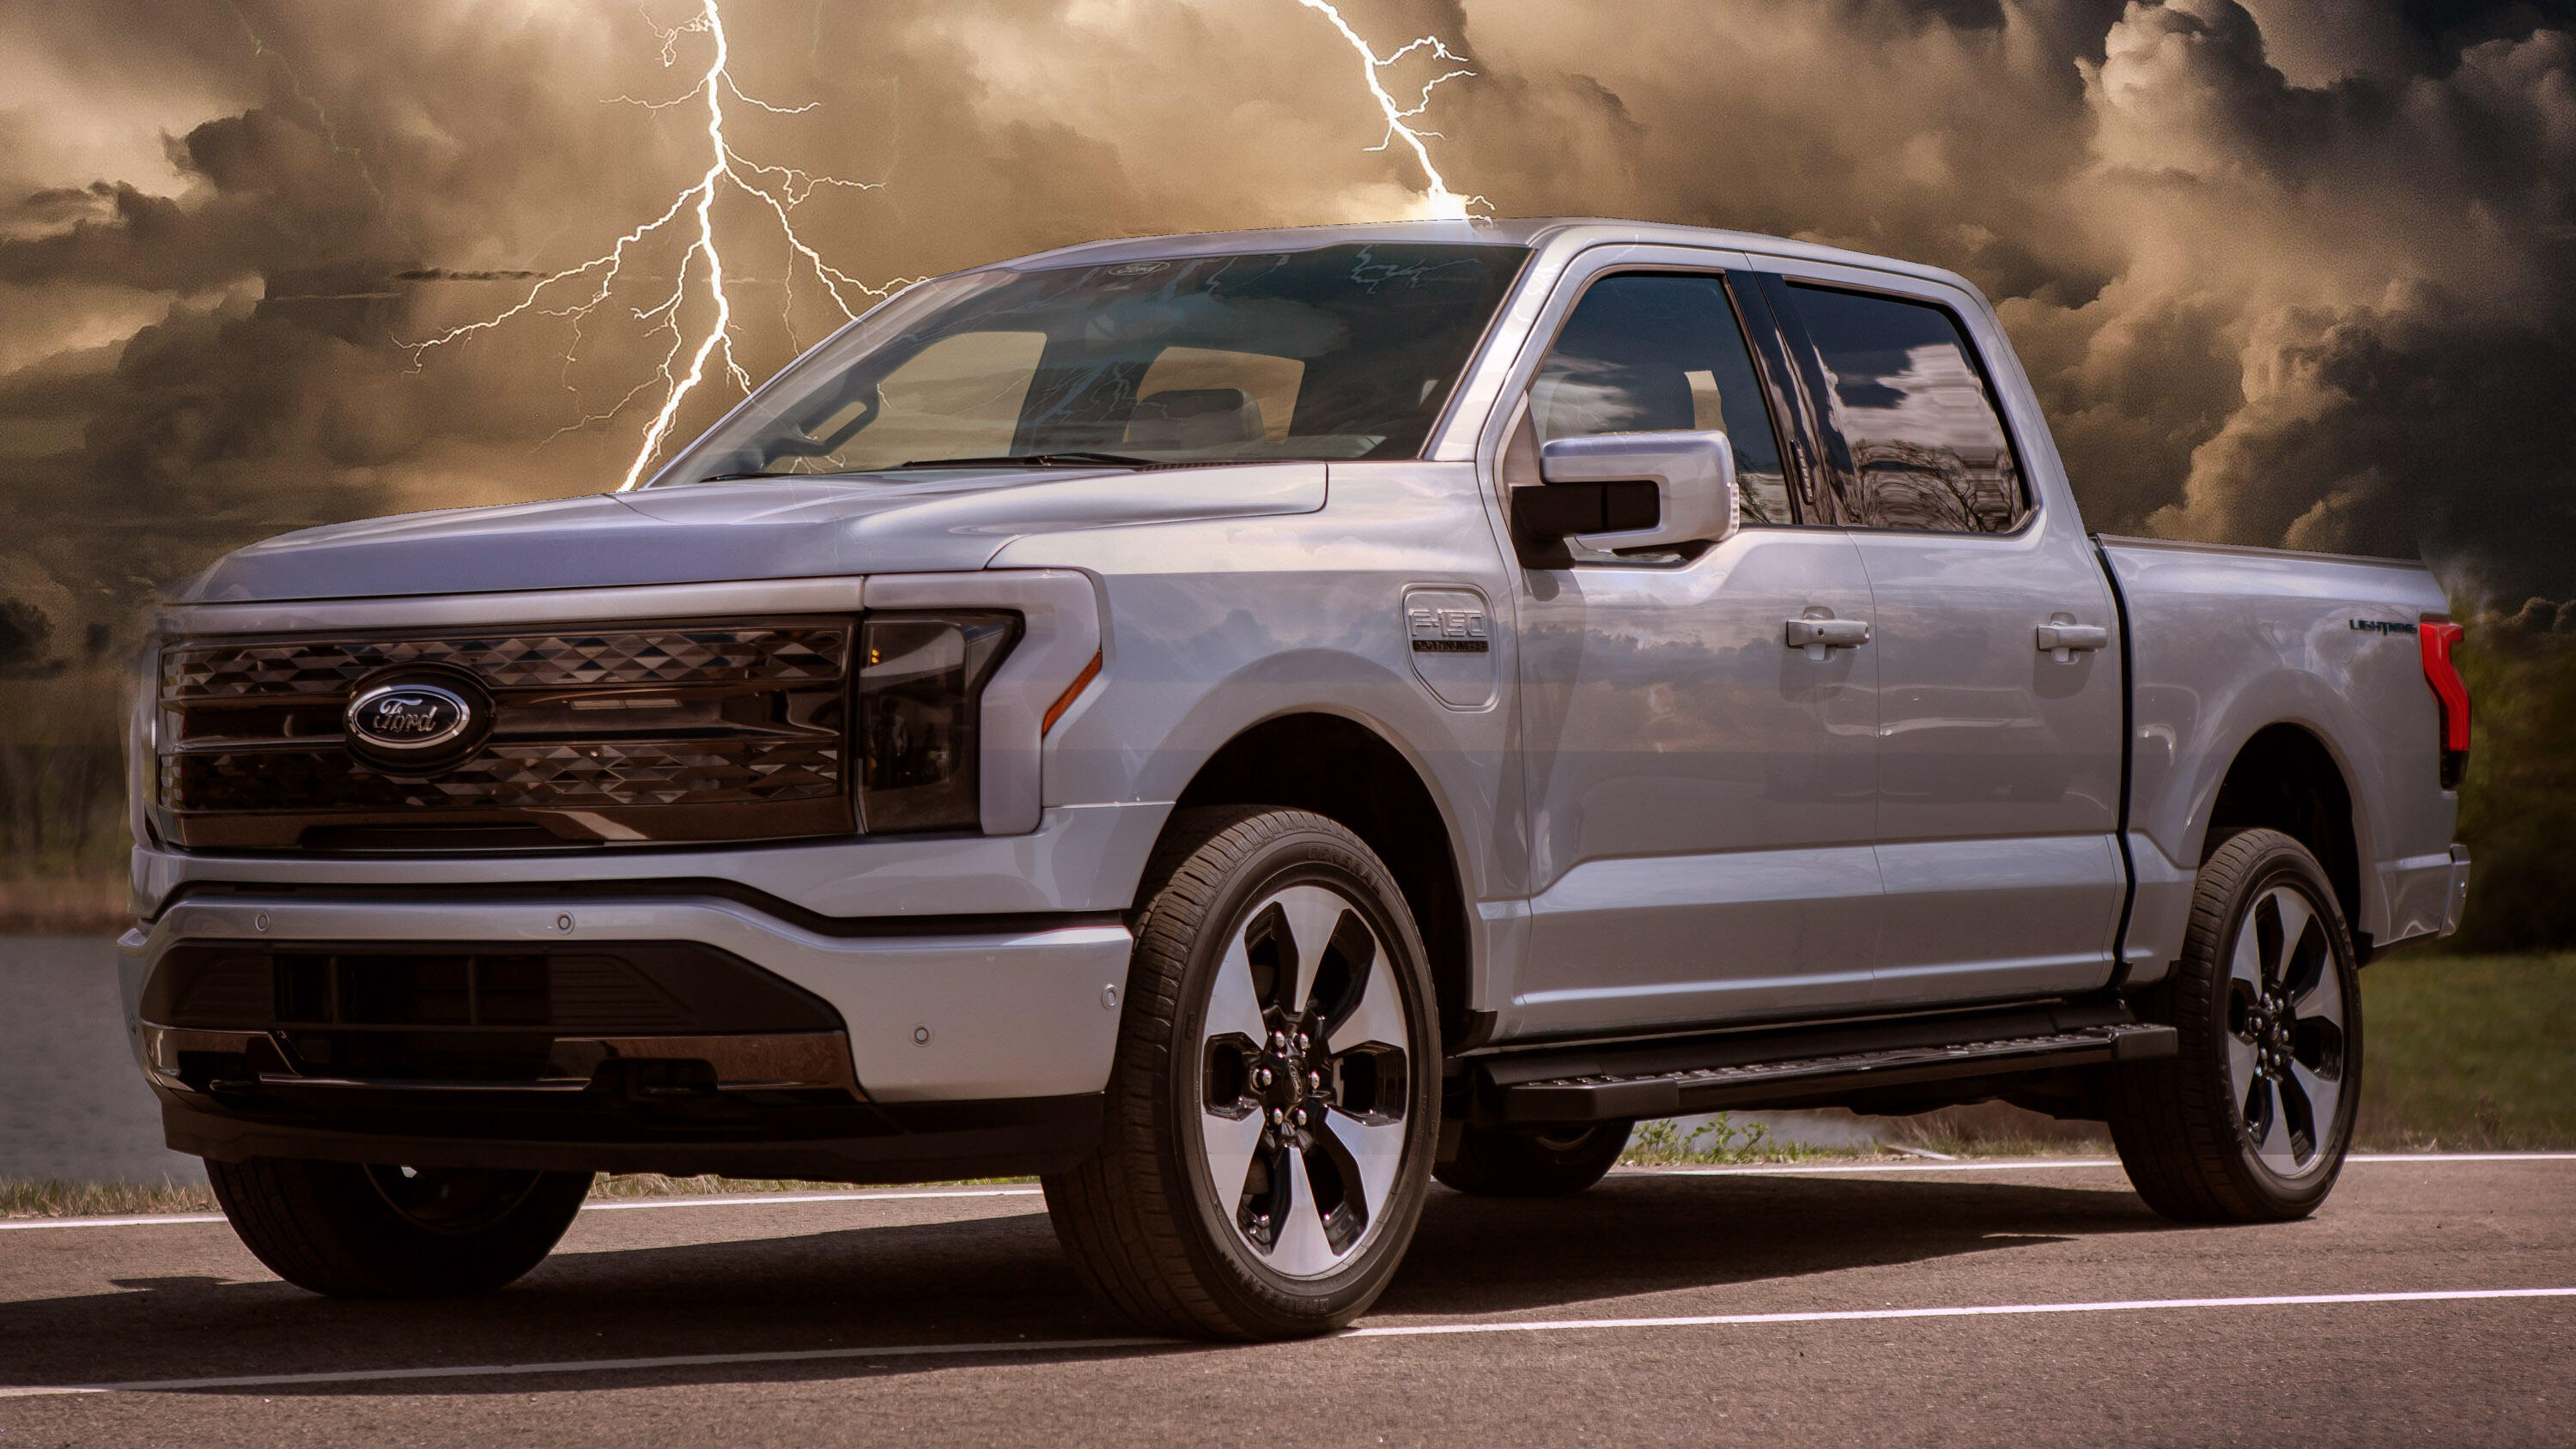 Video: The 2022 Ford F-150 Lightning is a battery-powered mic-drop